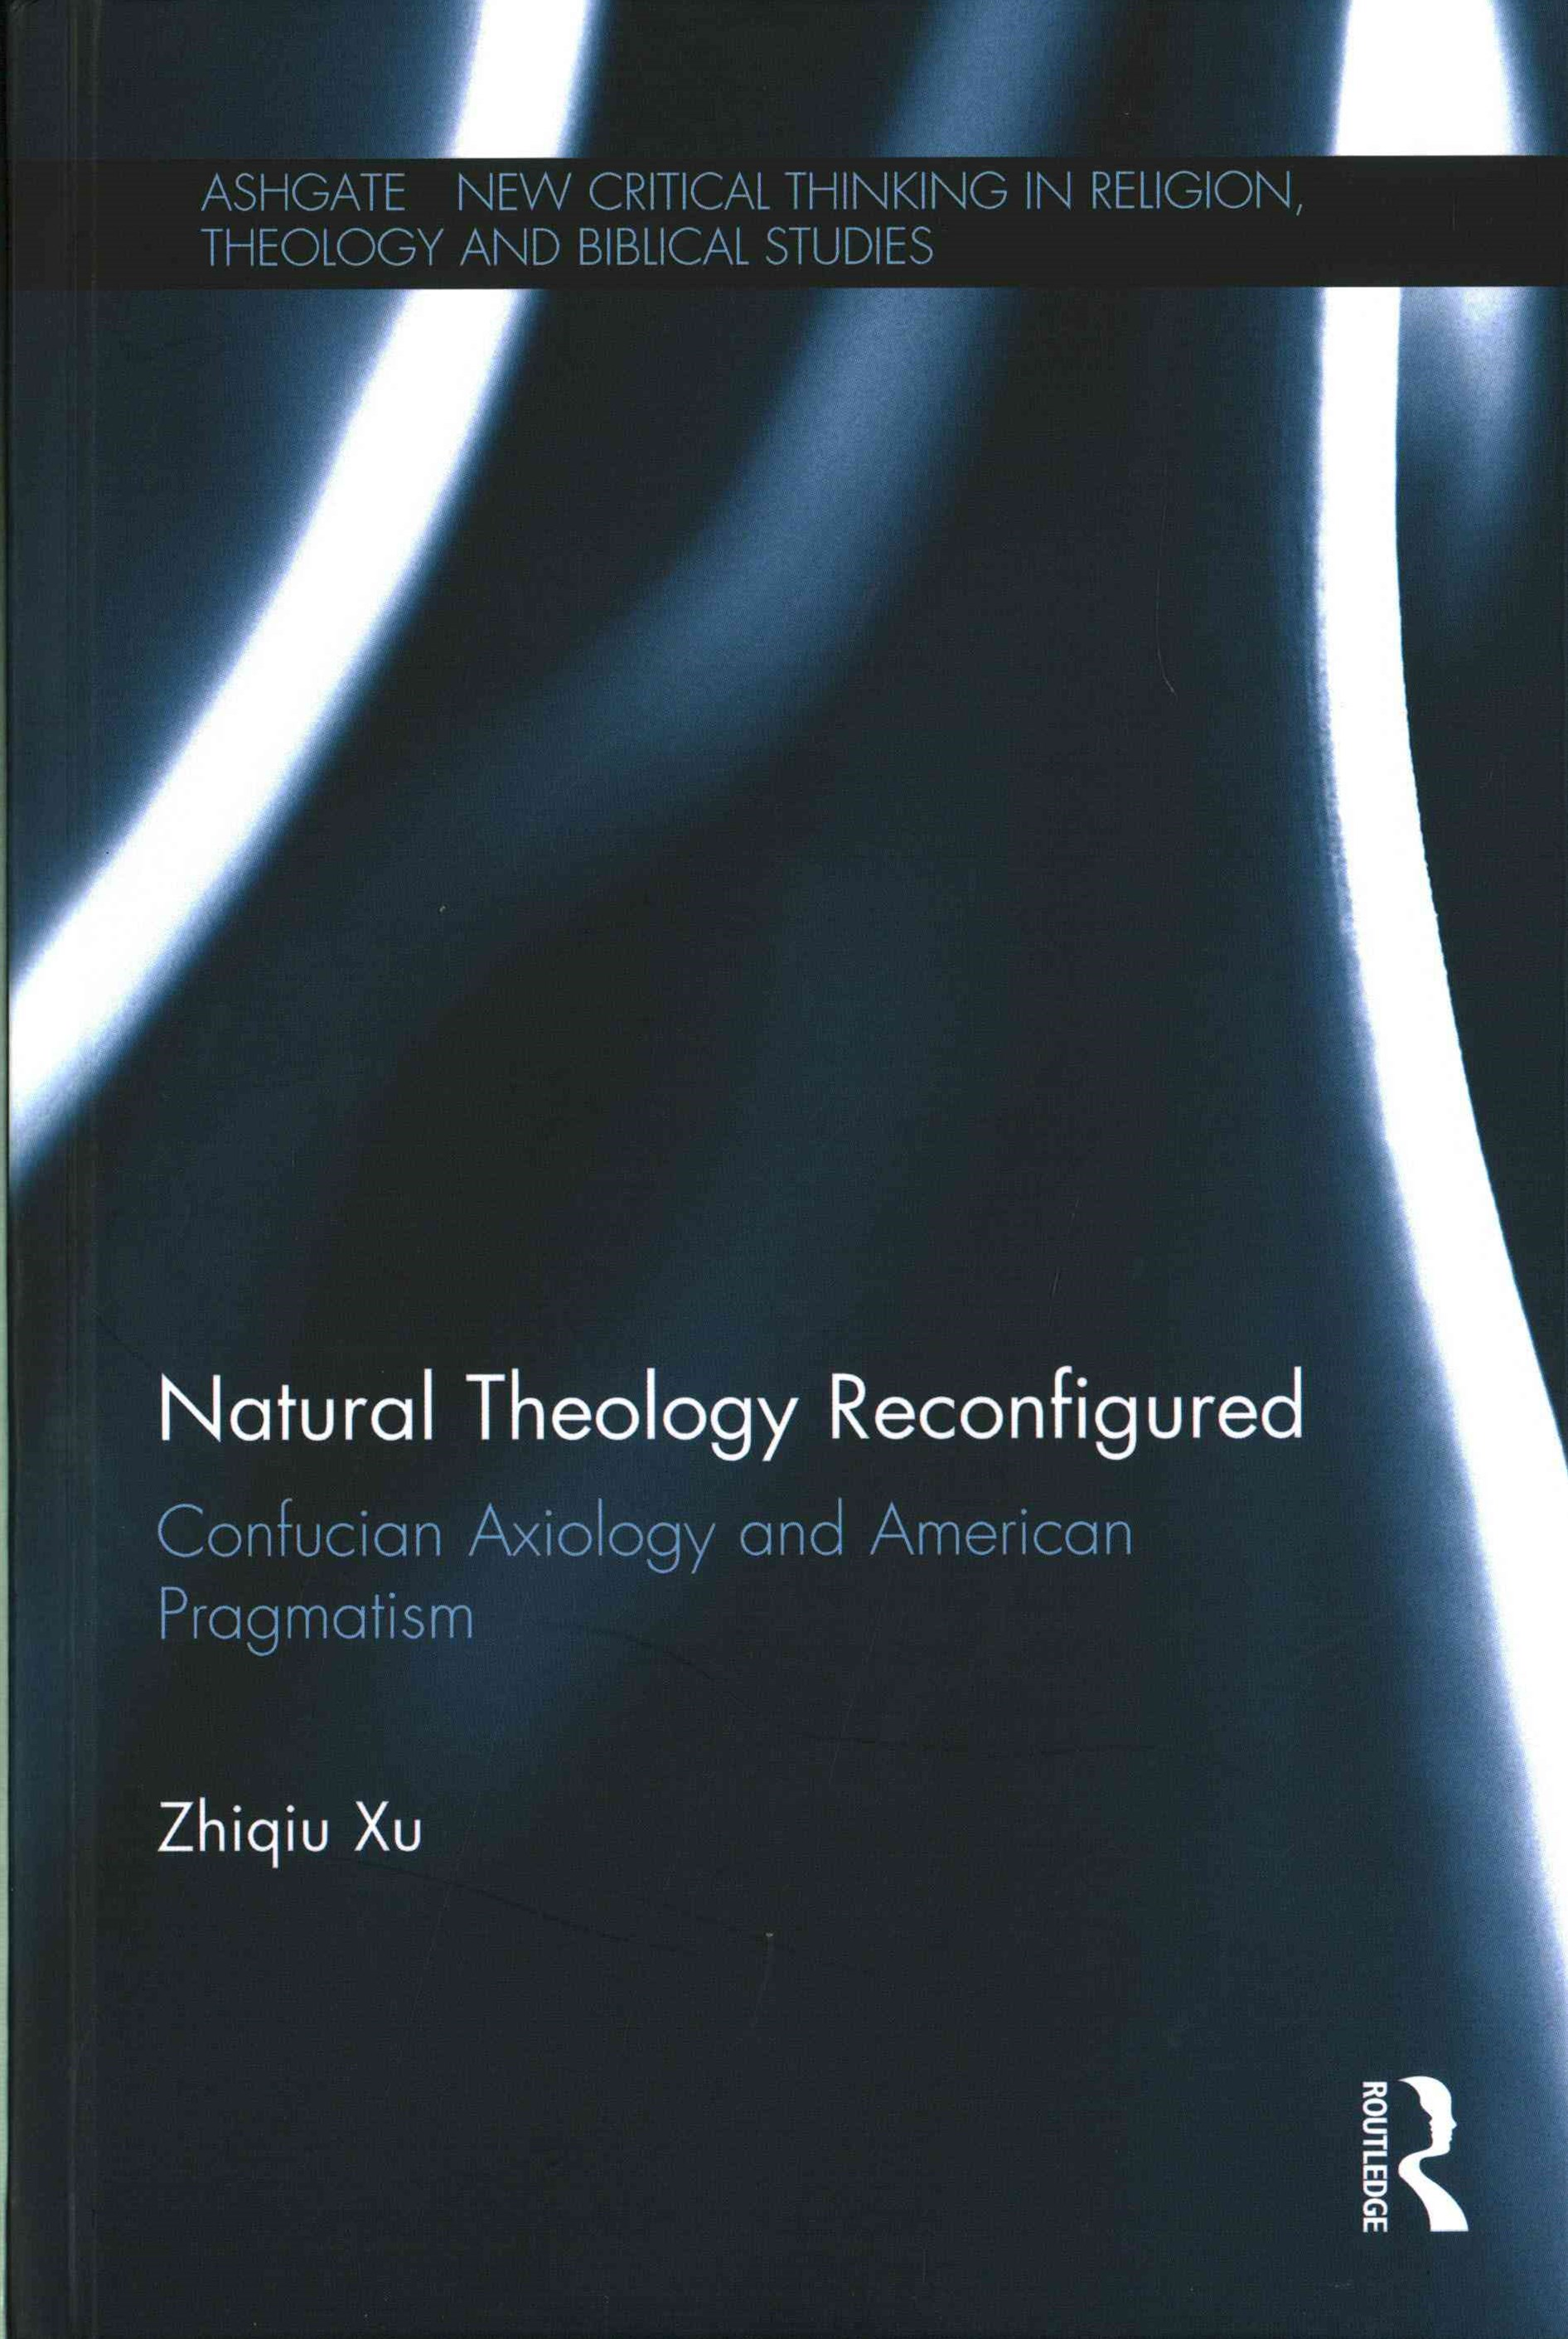 Natural Theology Reconfigured